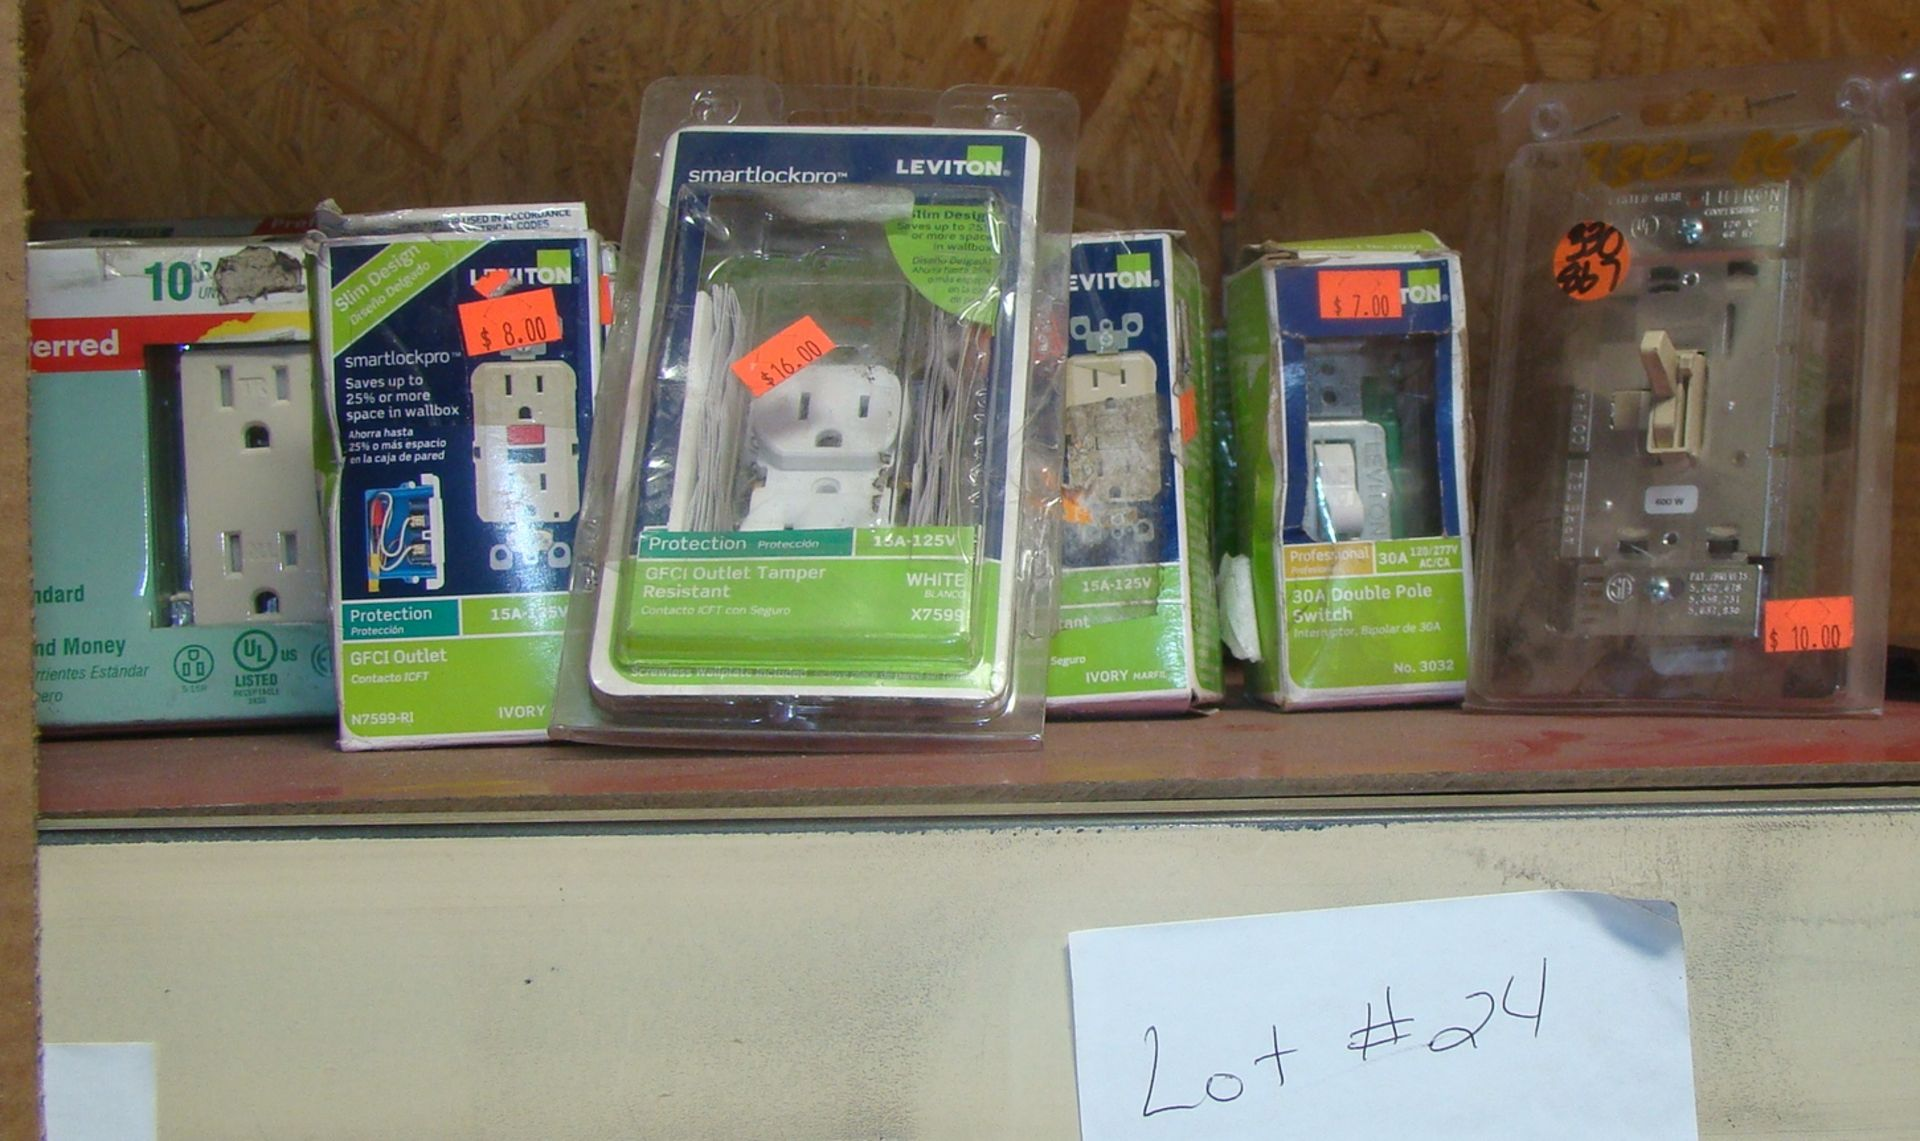 Lot 24 - 22 Leviton GFCI outlets; GFCI outlet Tamper Resistant; 30A Double Pole Switch; light switch with